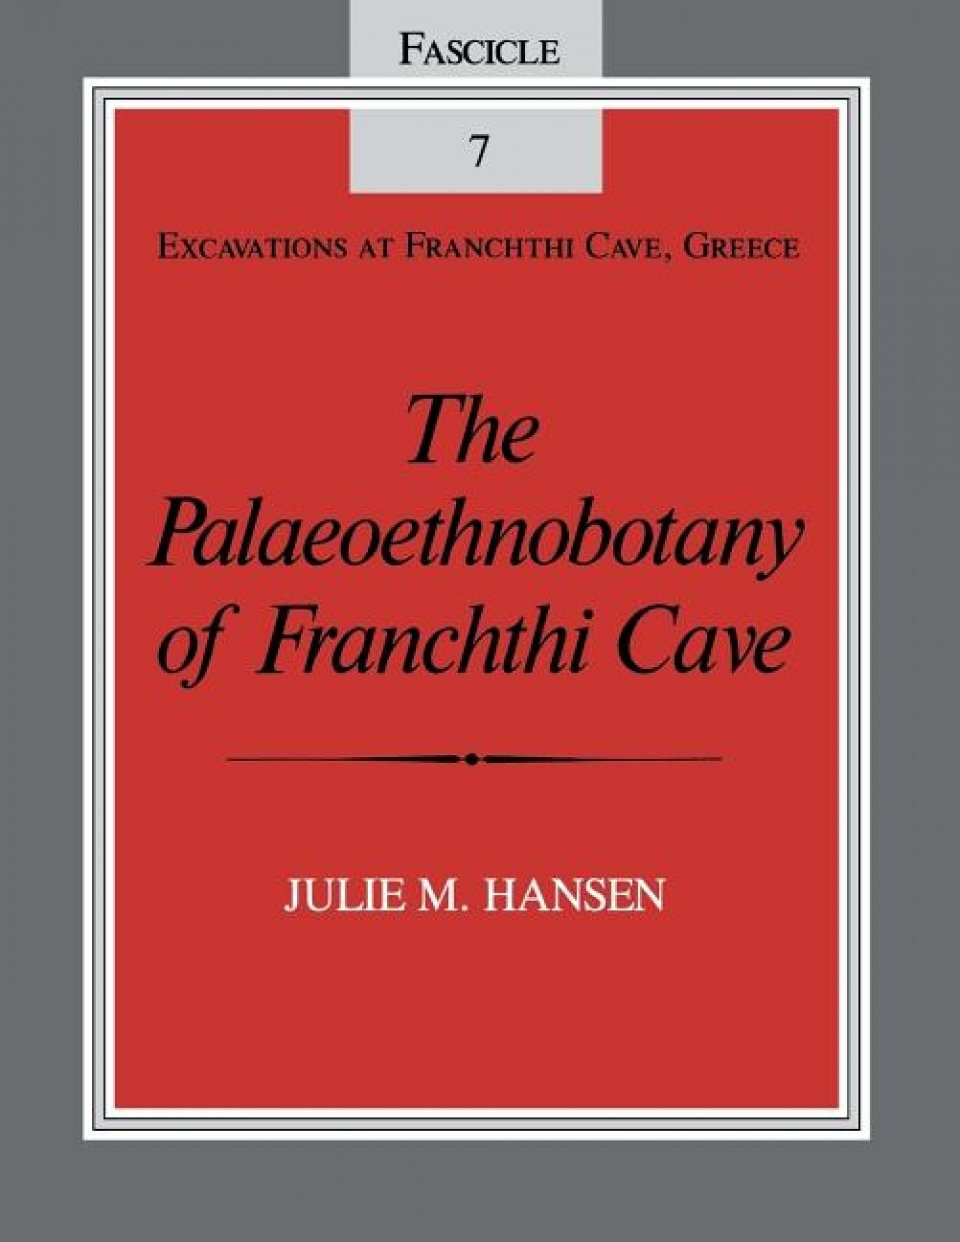 The Palaeoethnobotany of Franchthi Cave, Greece